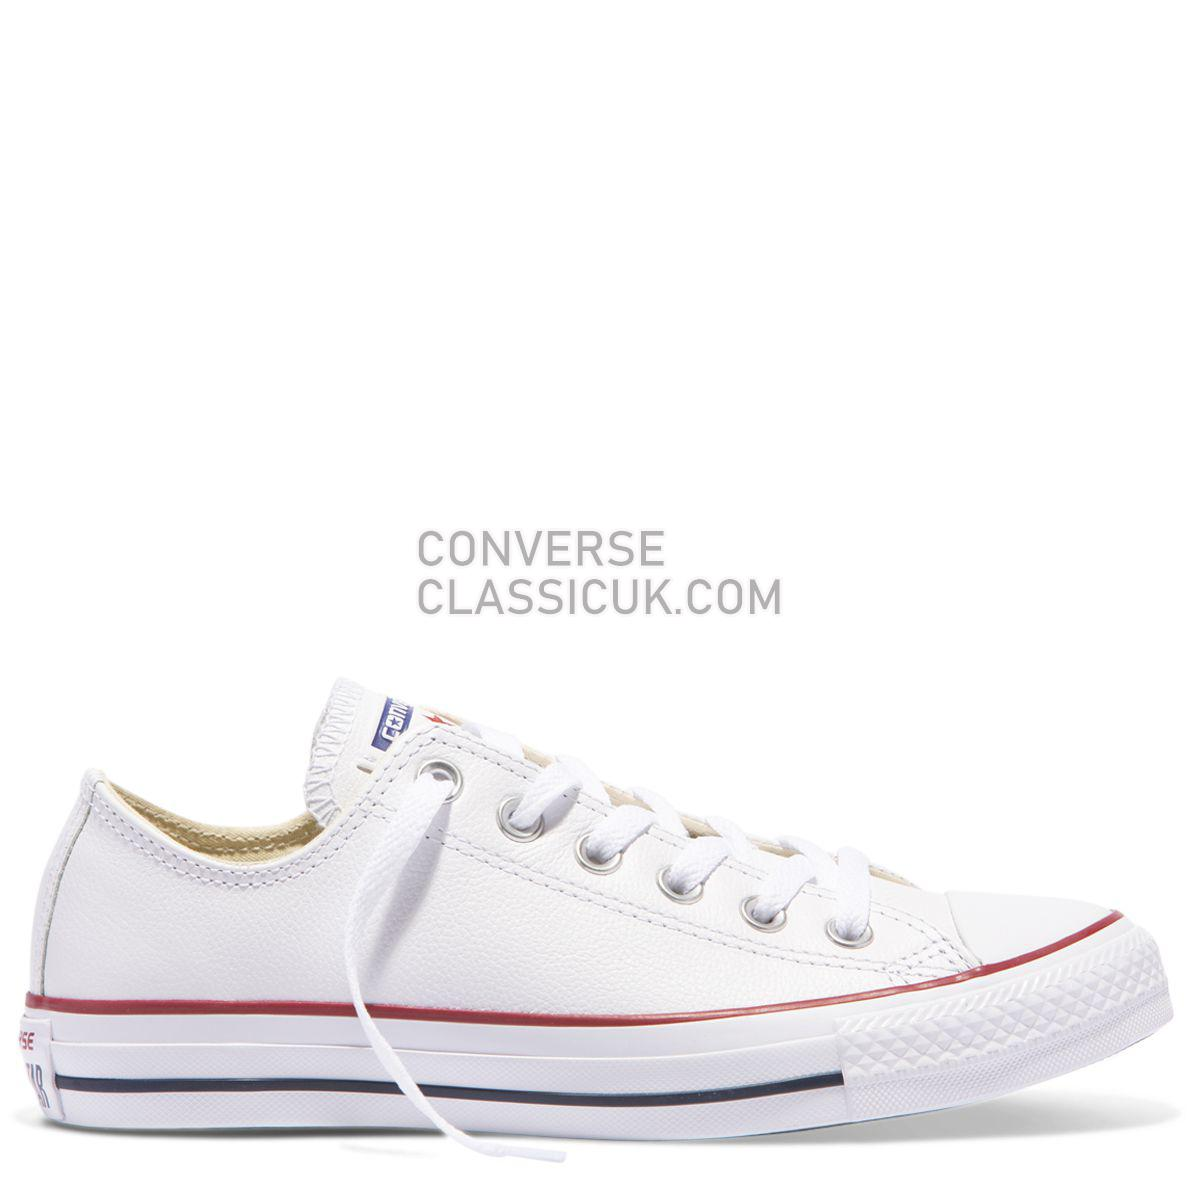 Converse Chuck Taylor All Star Leather Low Top White Mens Womens Unisex 132173 White Shoes